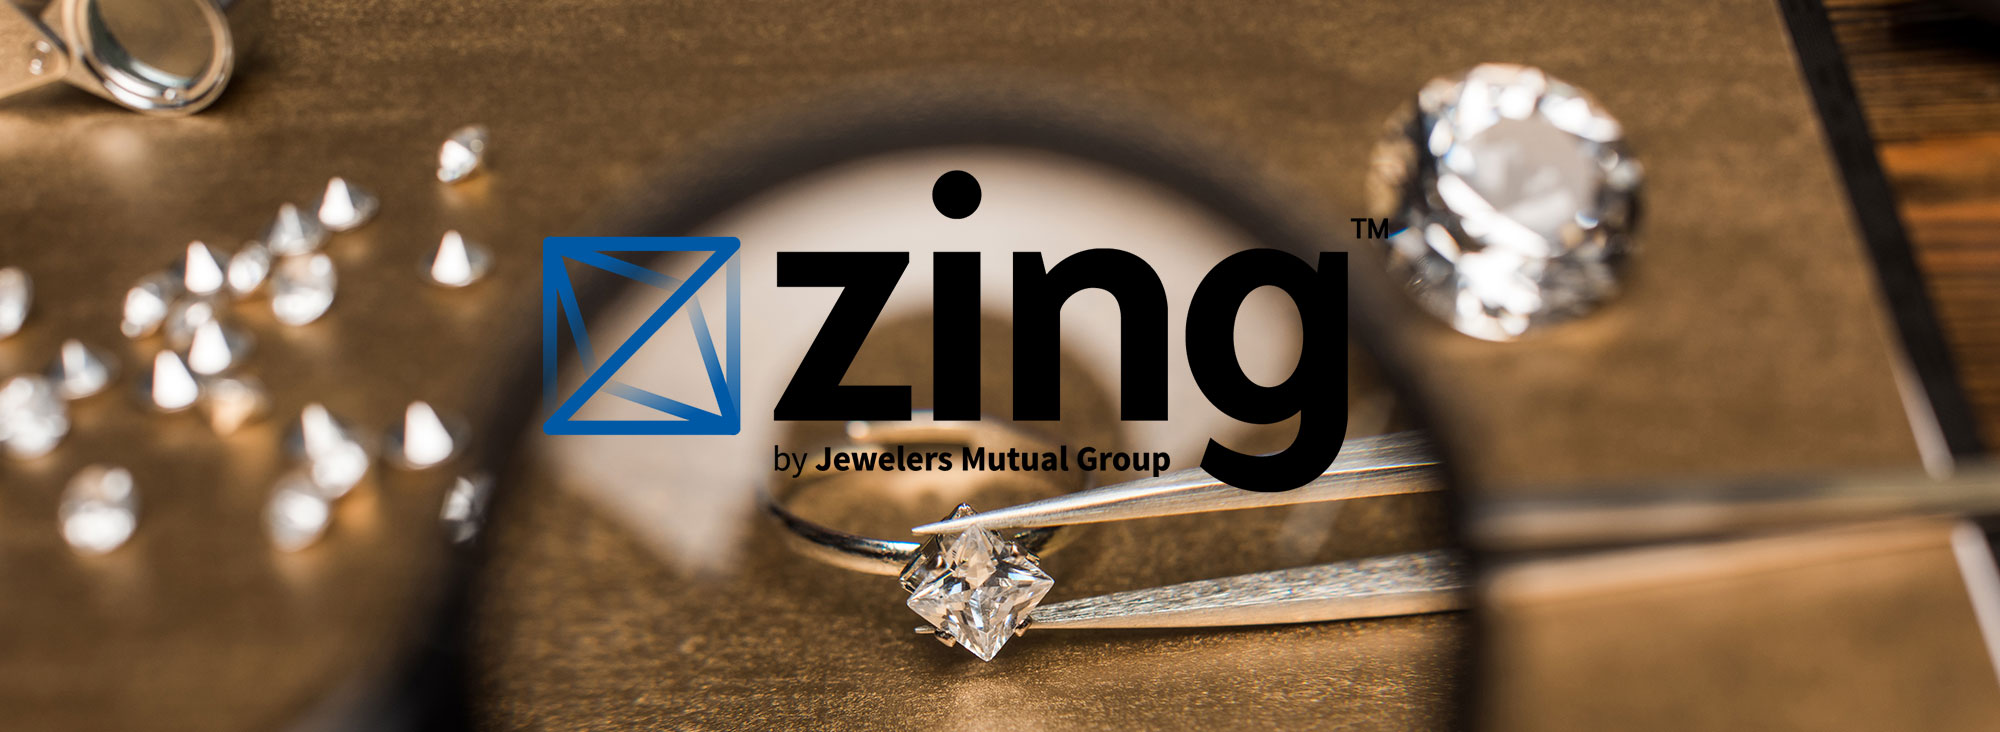 Jewelry Appraisals Made Easy